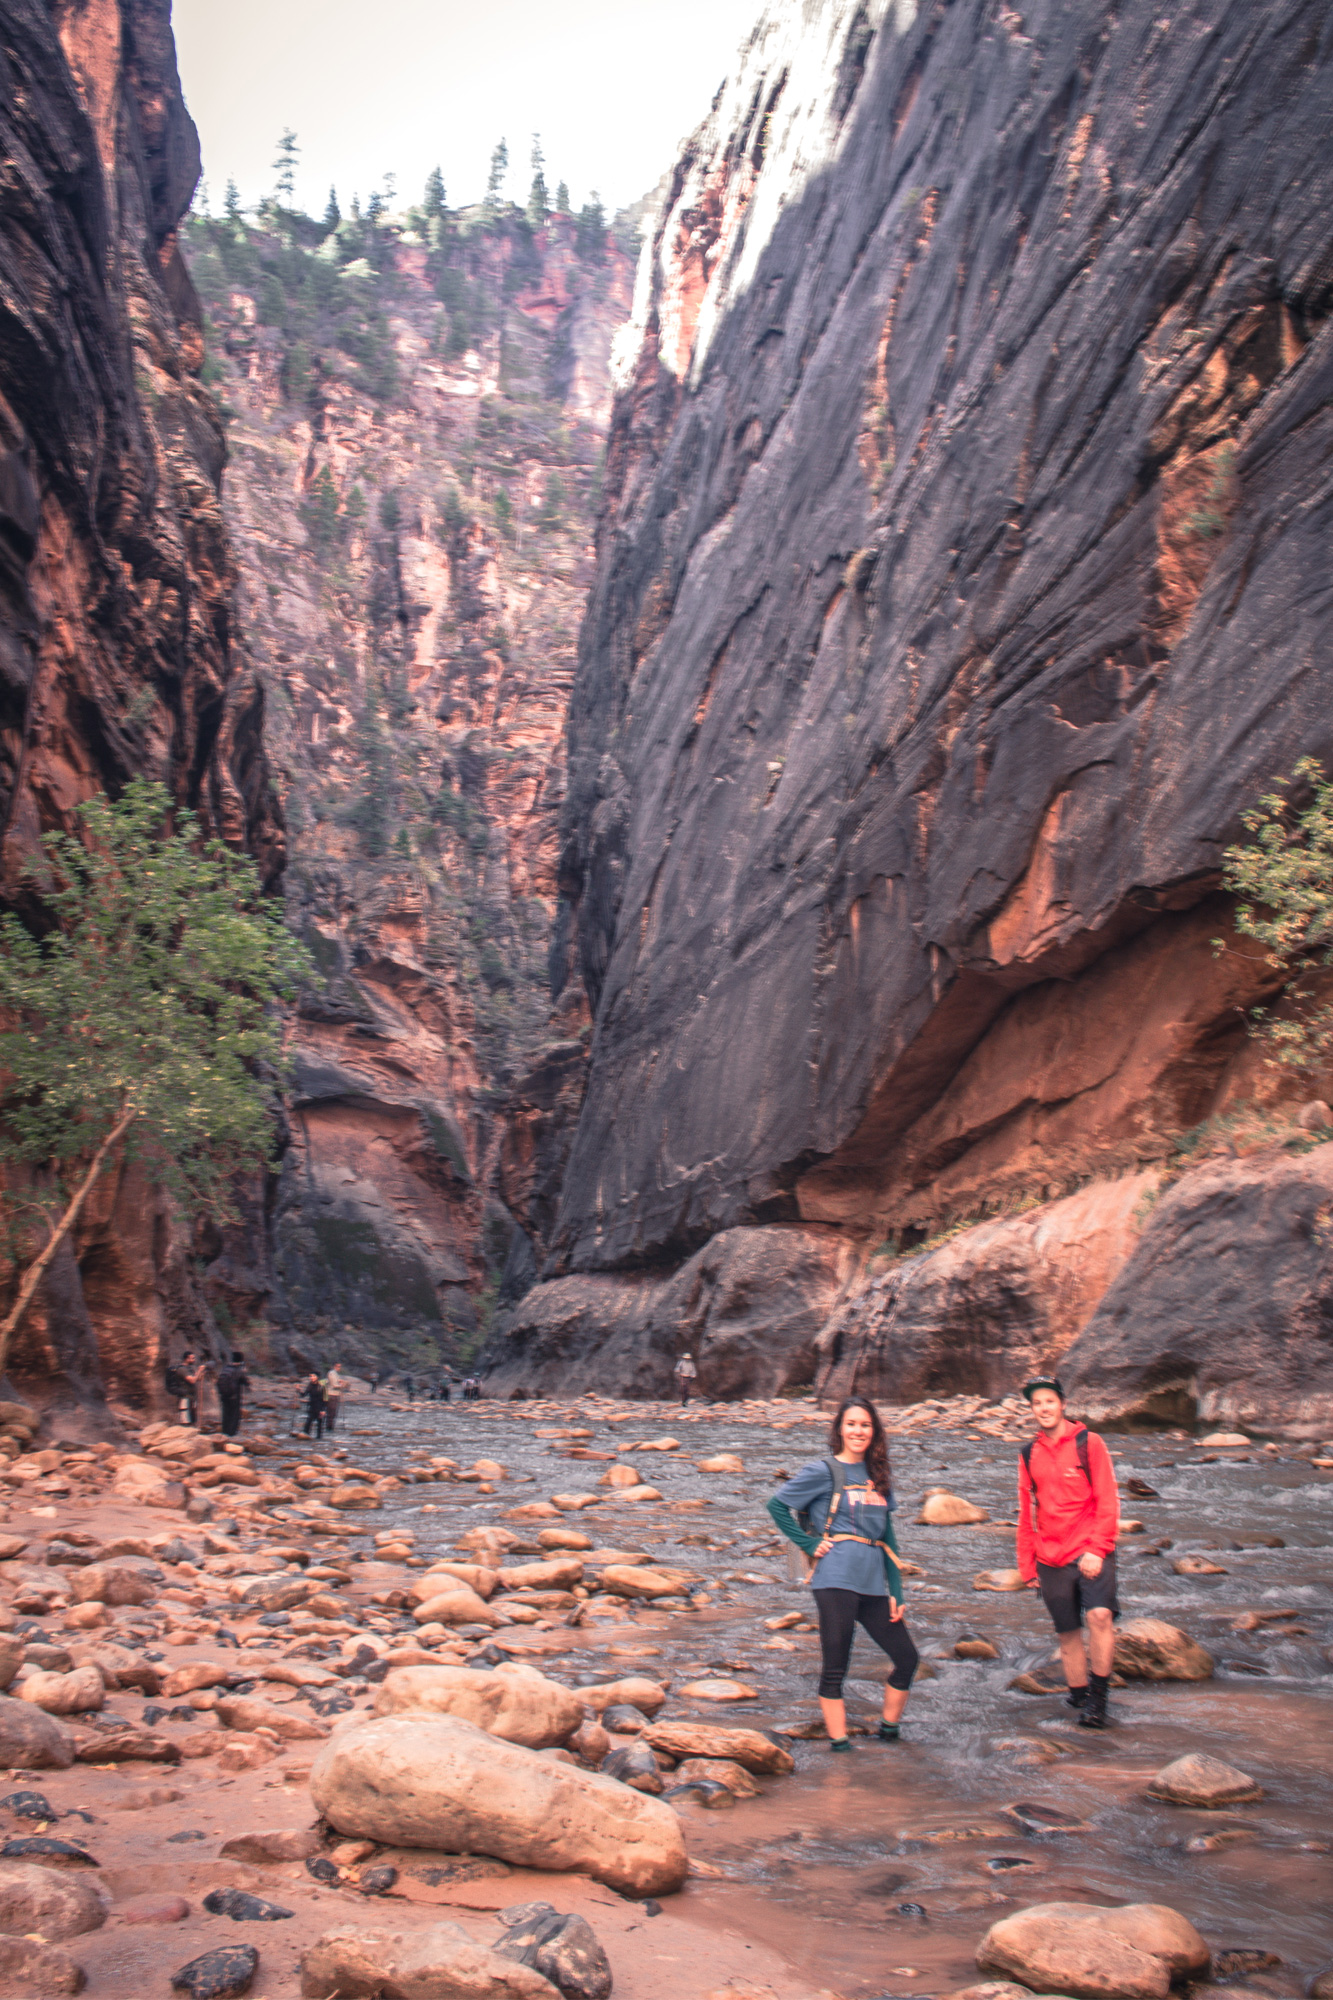 Amy and Cal in The Narrows Zion National Park